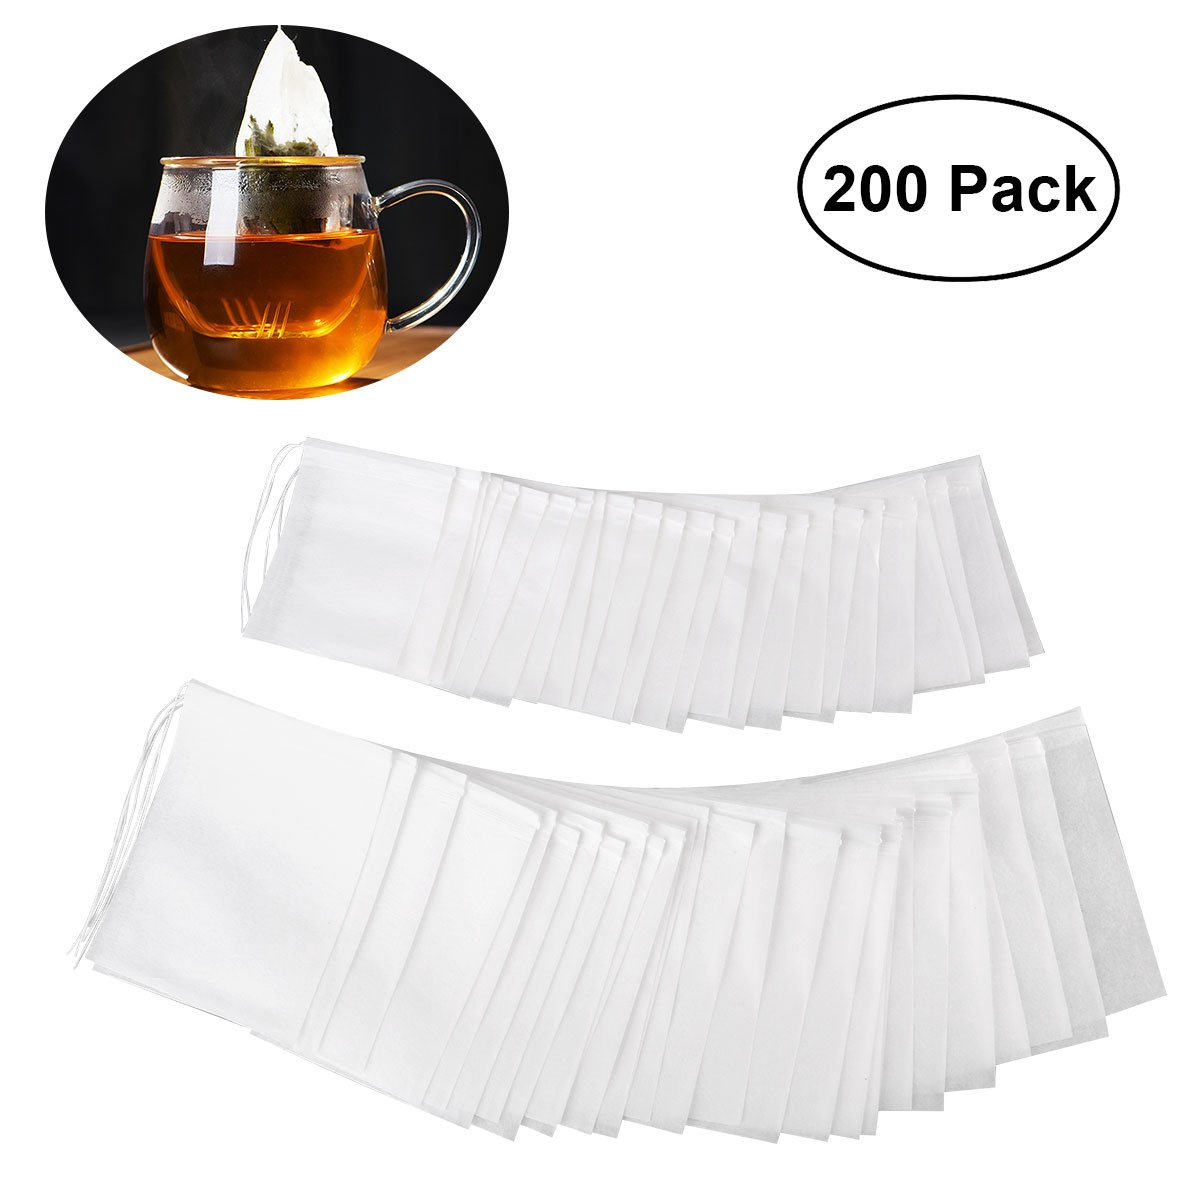 OUNONA 200pcs Drawstring Tea Bag Filter Paper Empty Tea Pouch Bags for Loose Leaf Tea Powder Herbs 2 different sizes(3.5in 2.8in and 2.8in 2.2in)